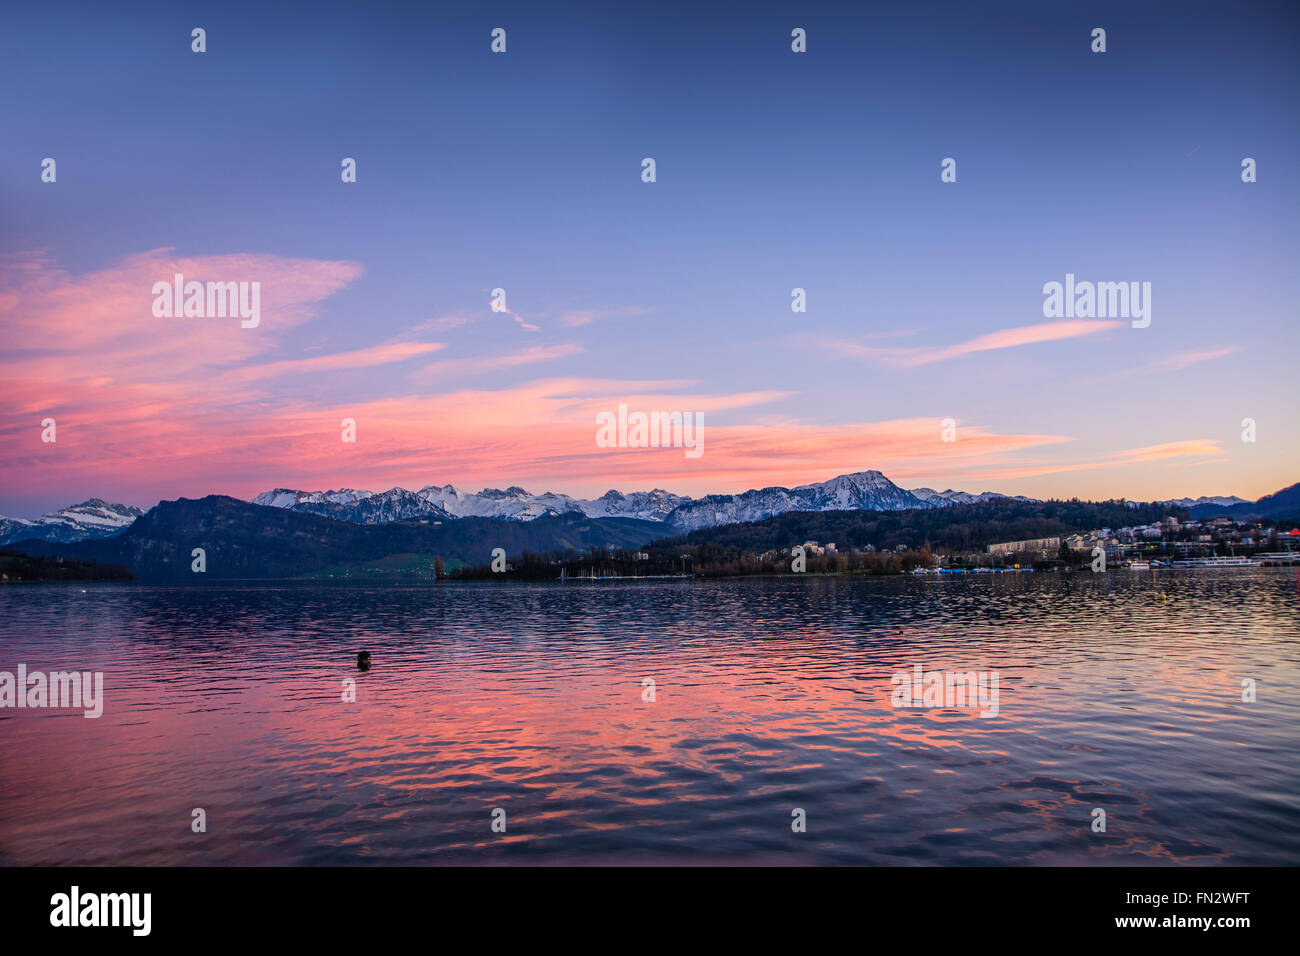 Fascinating view of Lucerne Lake in Switzerland at dusk or sundown - Stock Image